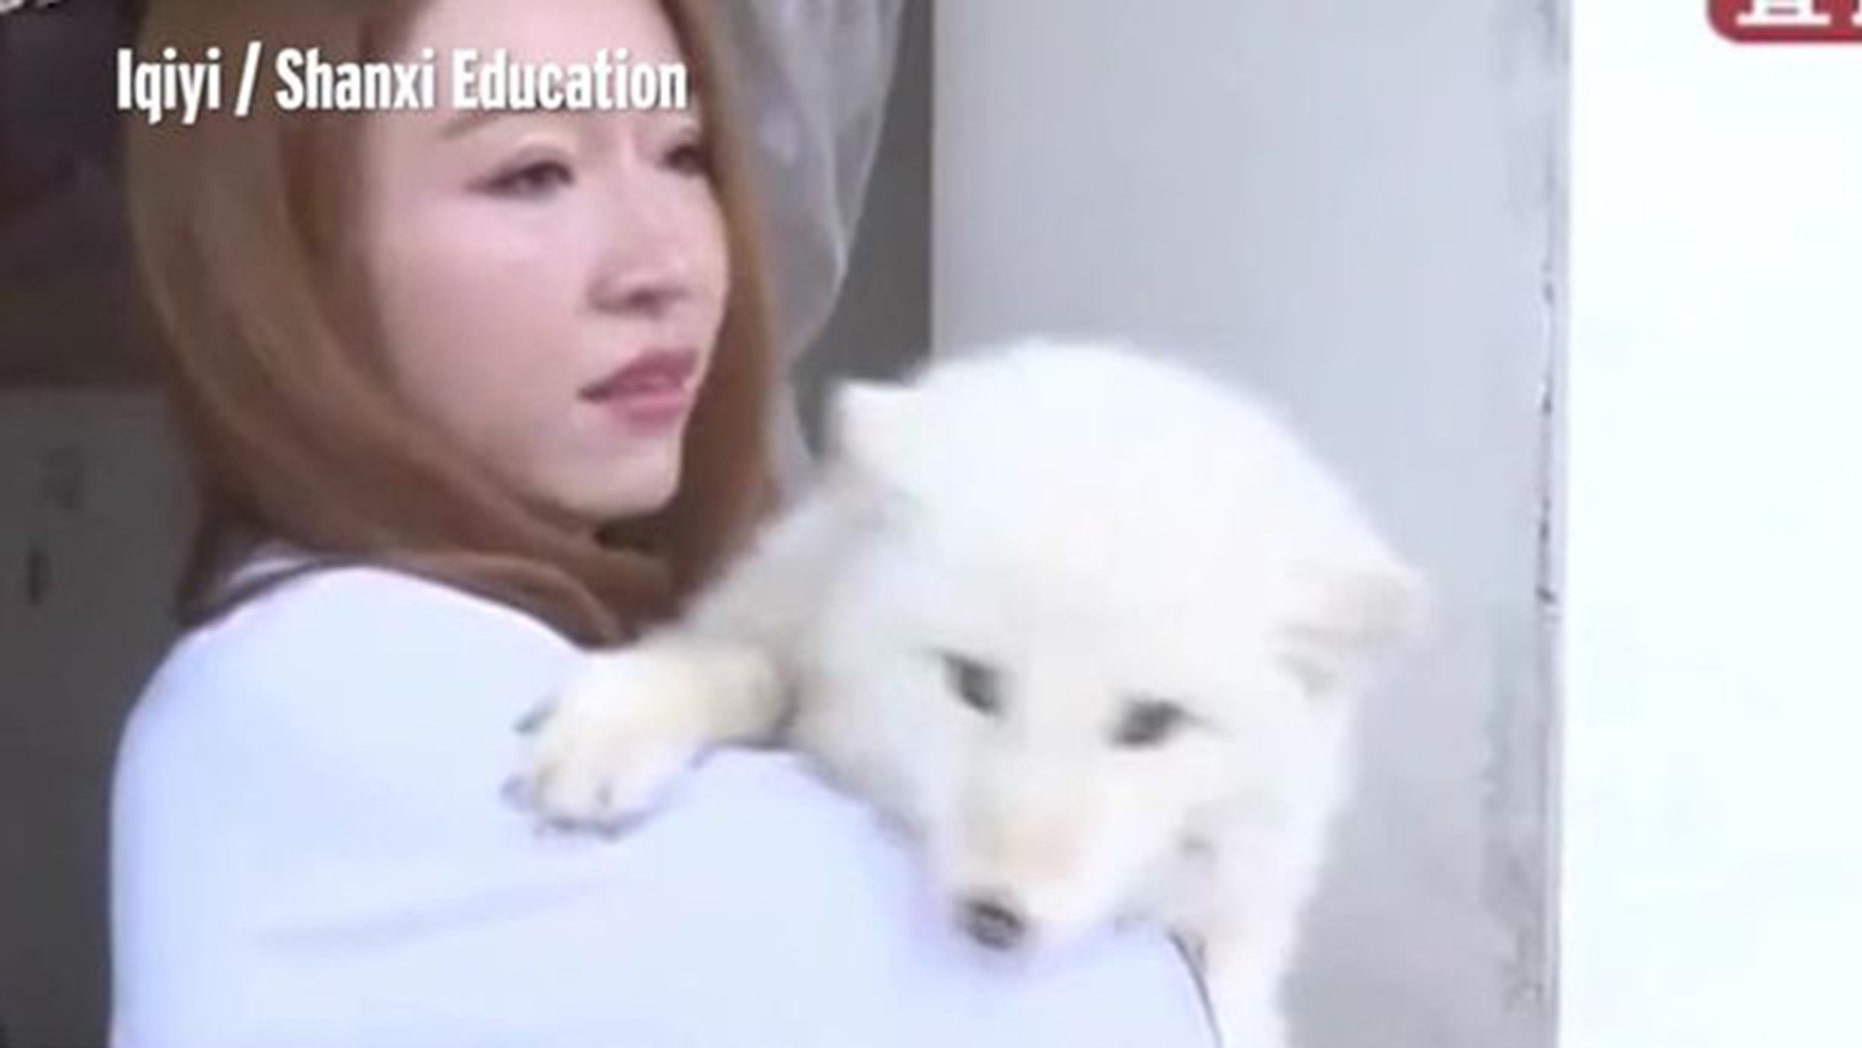 A woman named Ms. Wang went to a pet store to buy a Japanese Spitz puppy, but quickly discovered the creature was a fox.